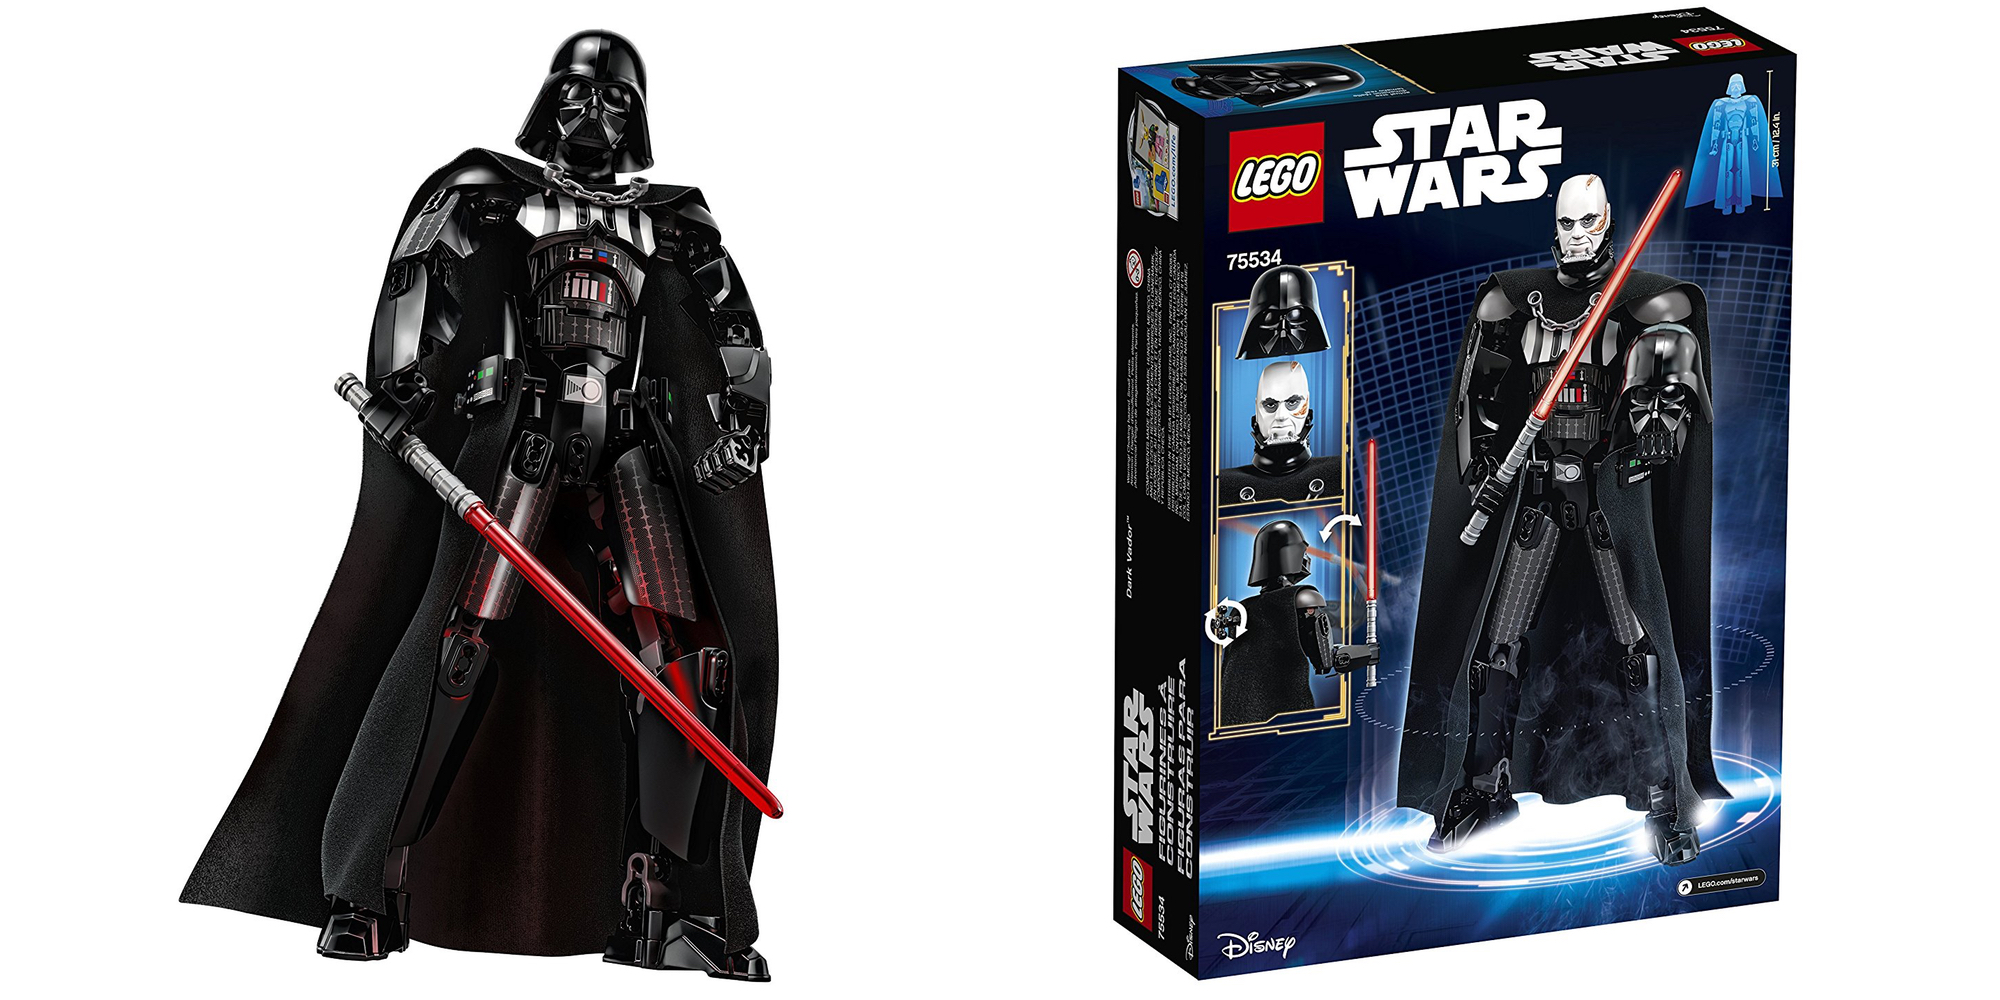 Assemble the 12-inch LEGO Darth Vader figure for $23 (Reg. $30) + Batman, City and more from $6